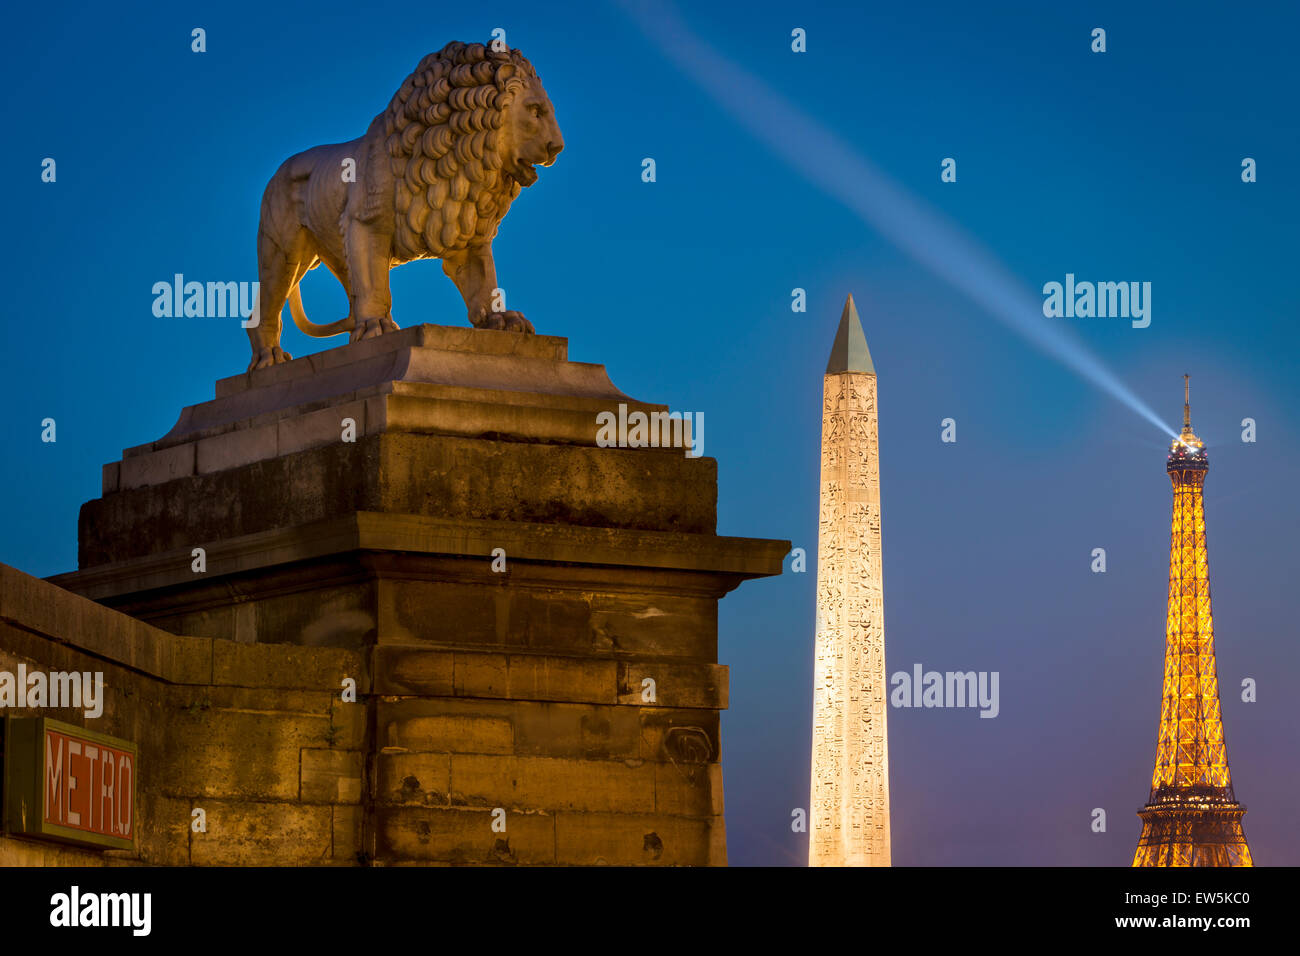 Lion statue overlooking the Egyptian Obelisk at Place de la Concorde and Eiffel Tower, Paris, France - Stock Image